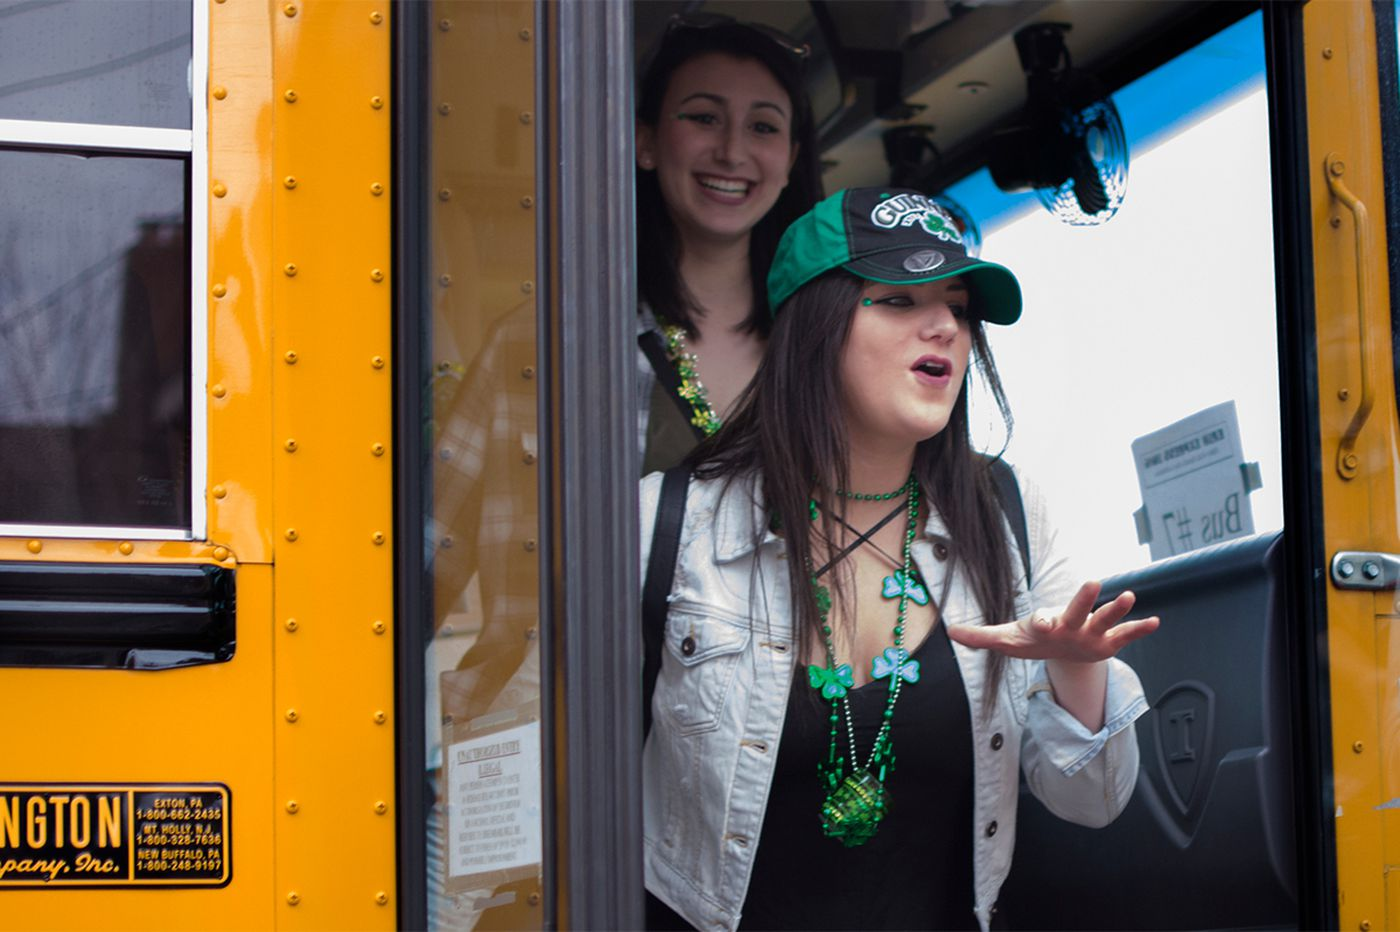 When did St. Patrick's Day become St. Patrick's Month in Philly?